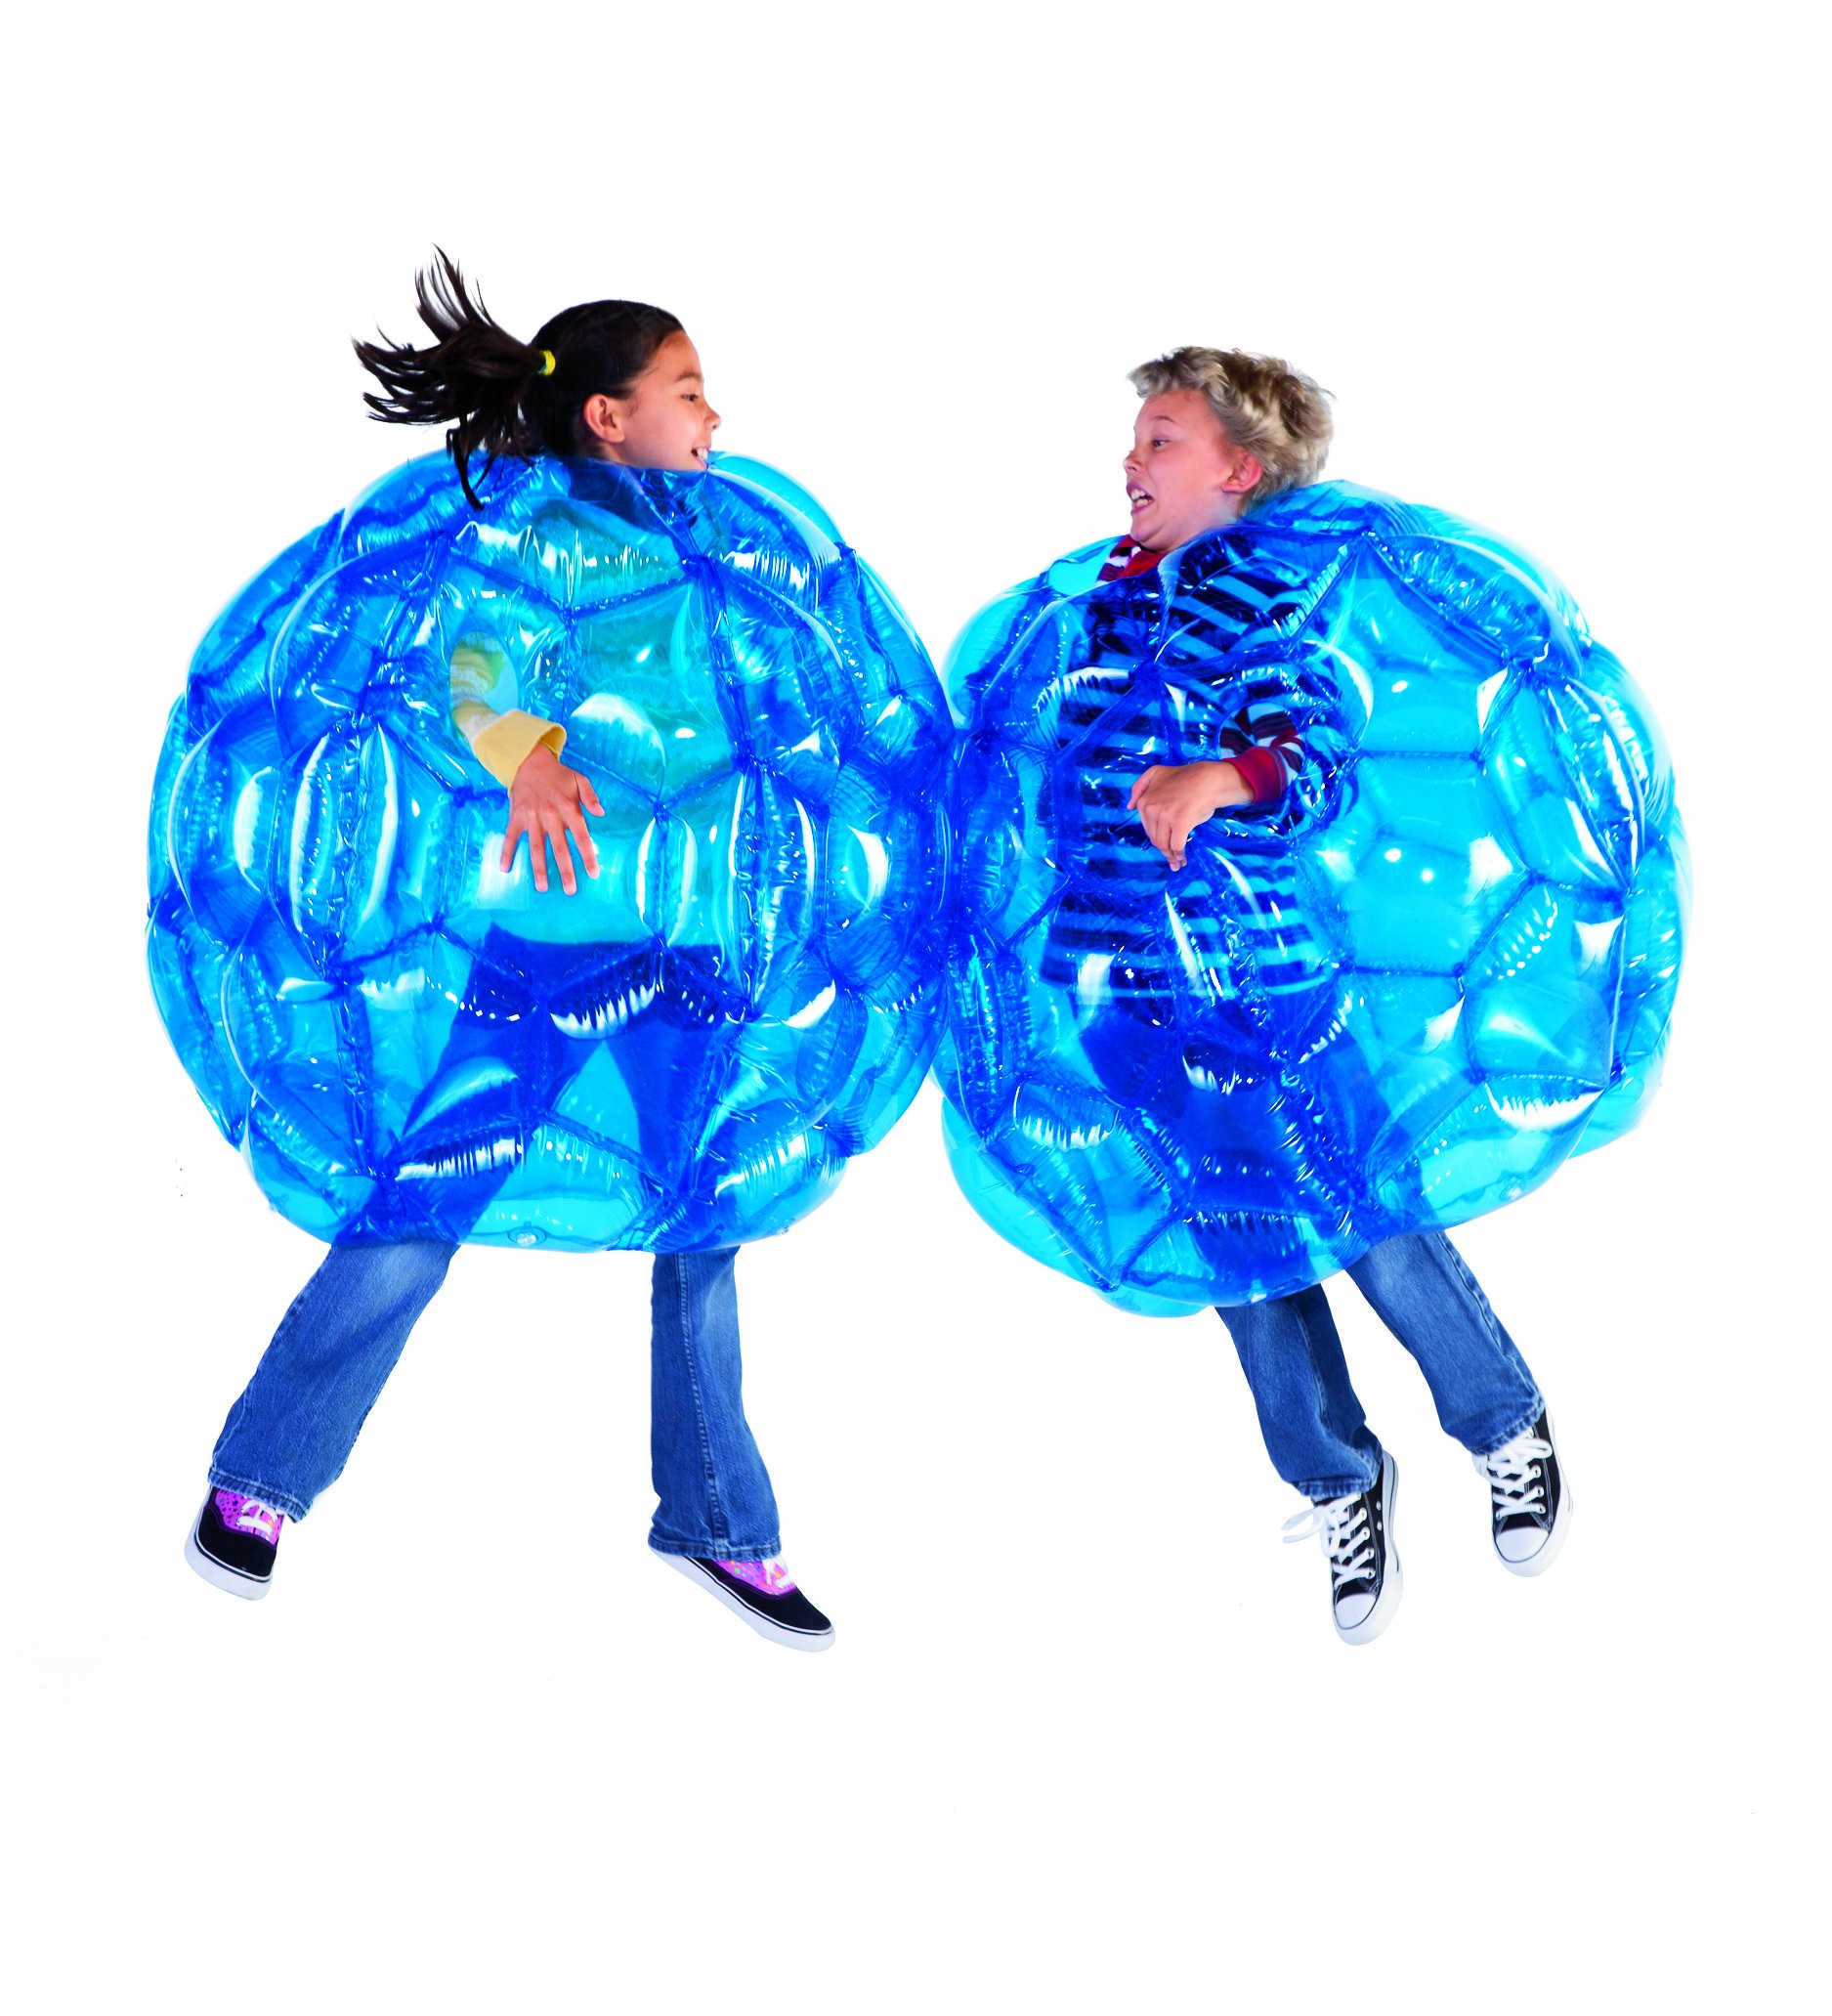 HearthSong 36''-diam. Set of 2 Blue Buddy Bumper Ball Inflatable Blow Up Giant Wearable Bubble Heavy Duty Durable PVC Vinyl by HearthSong